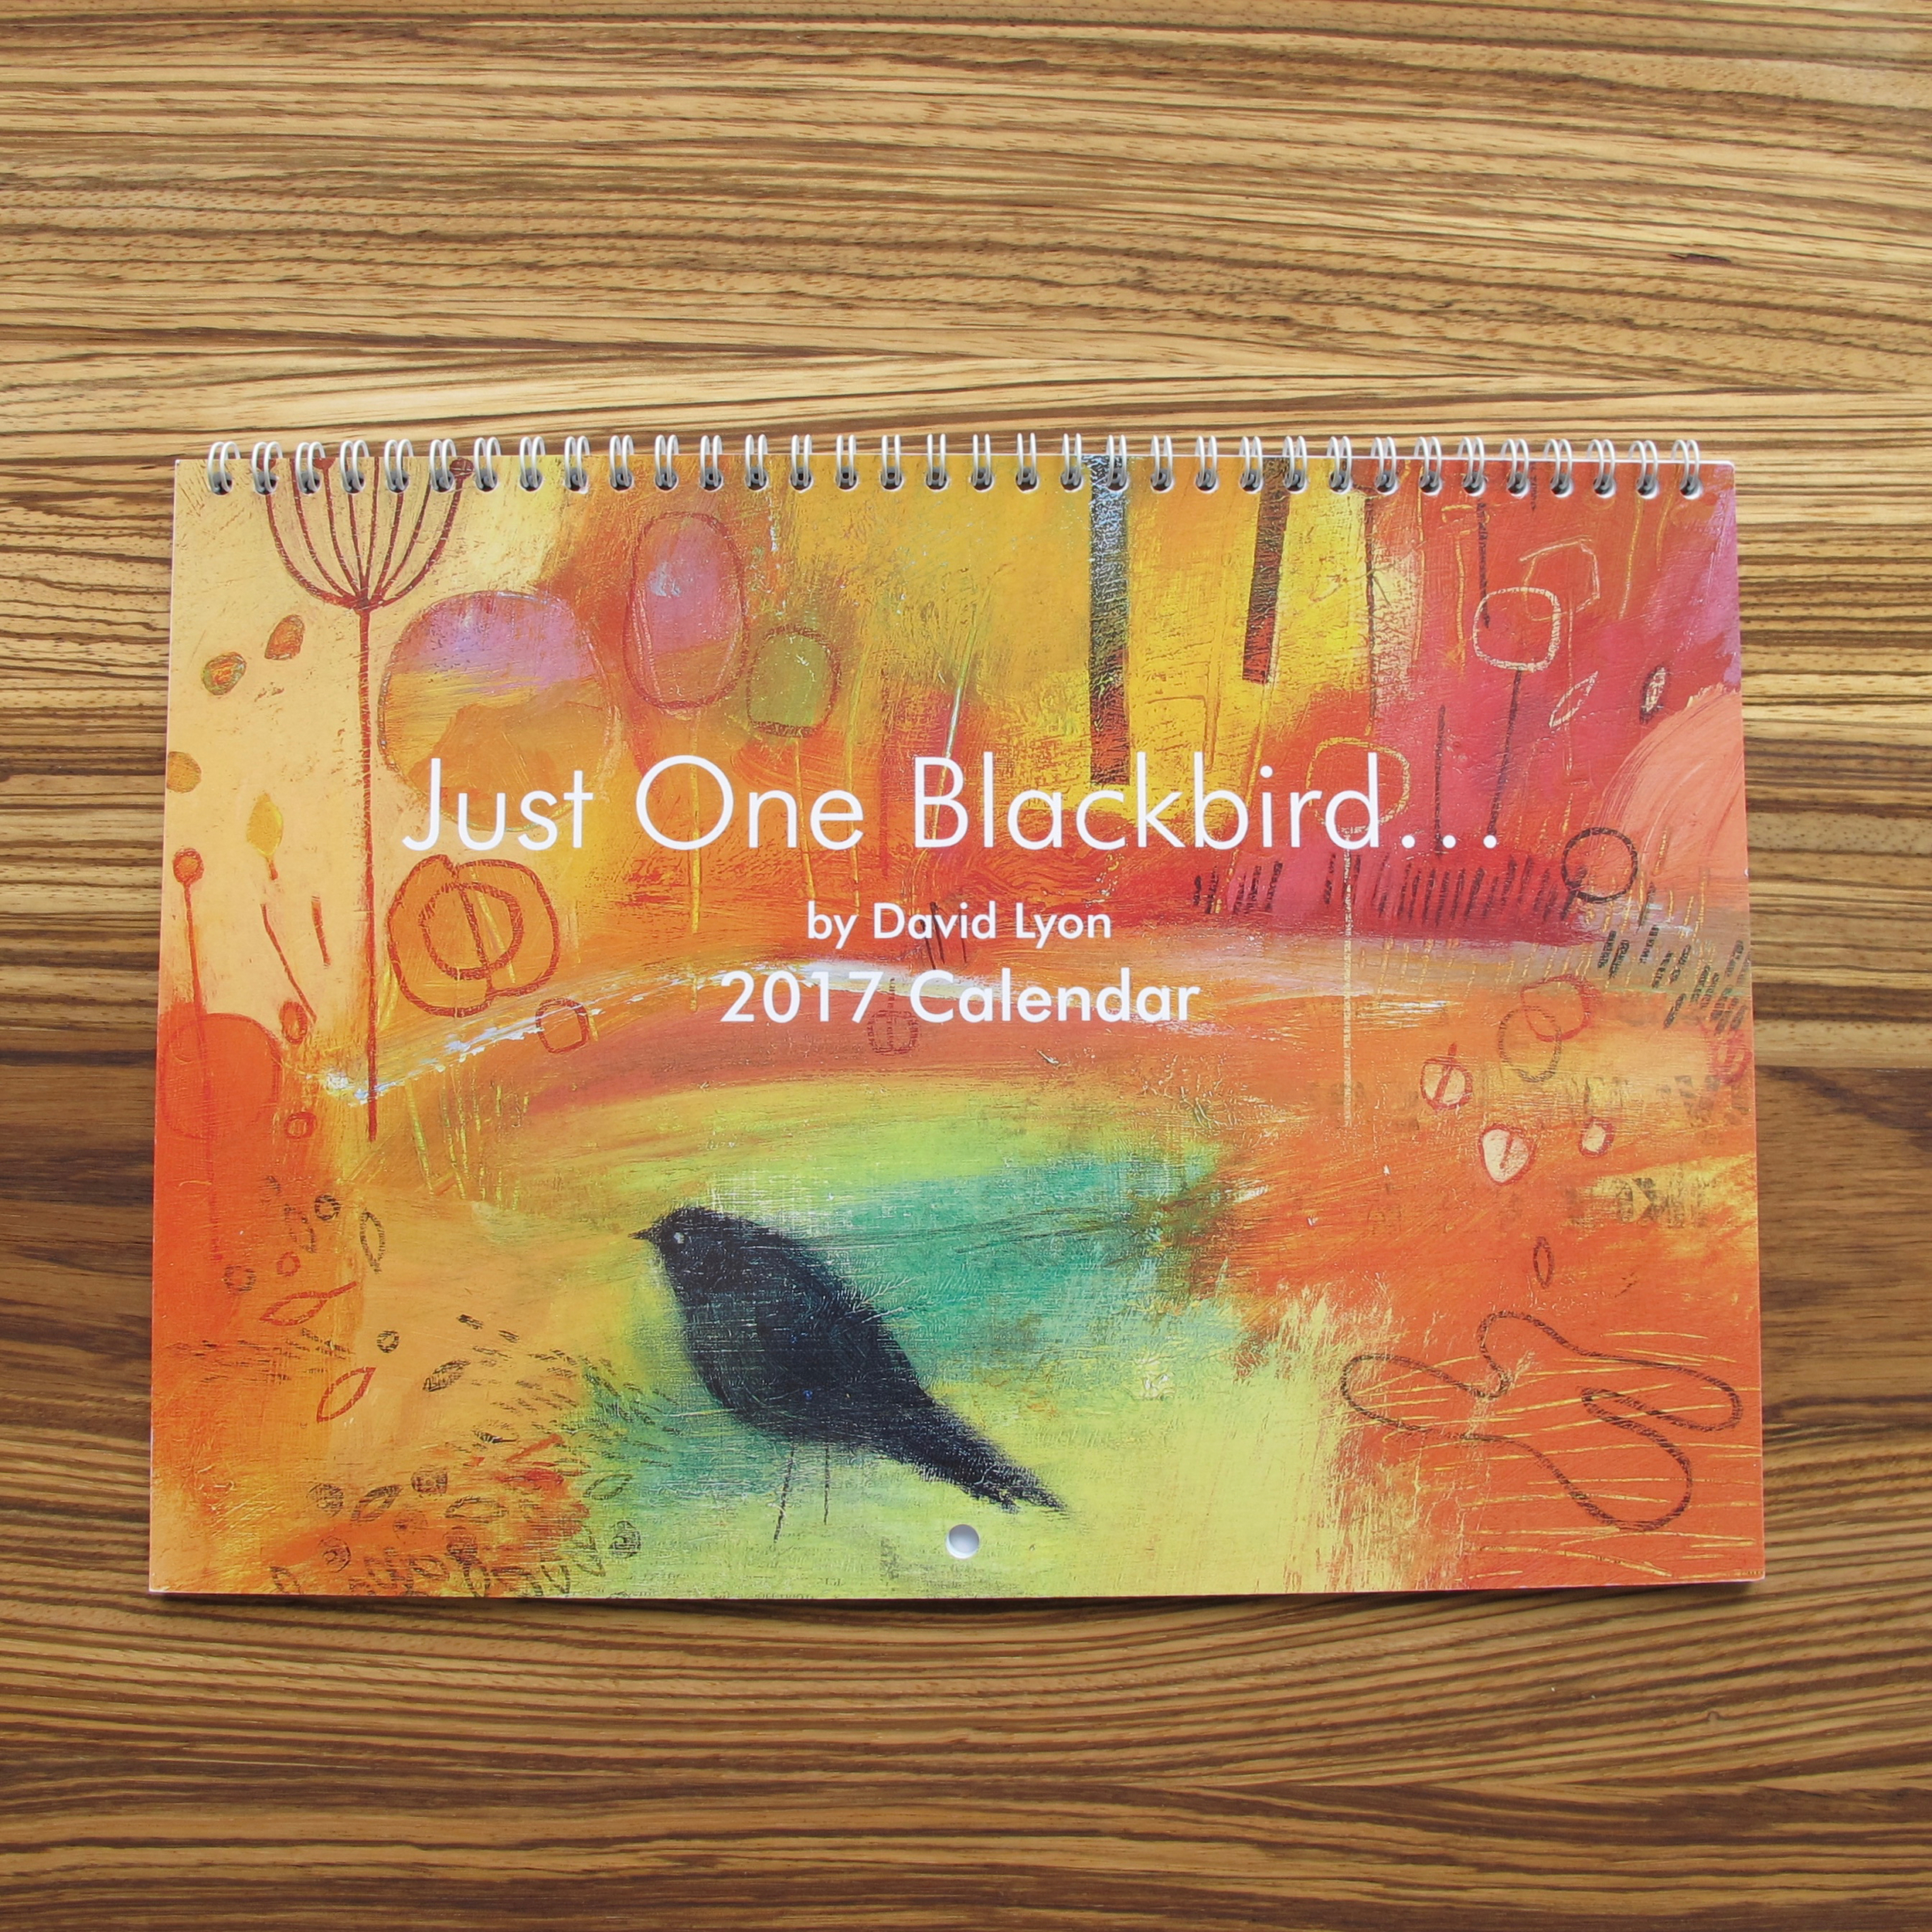 Calendar 2017 - Just One Blackbird